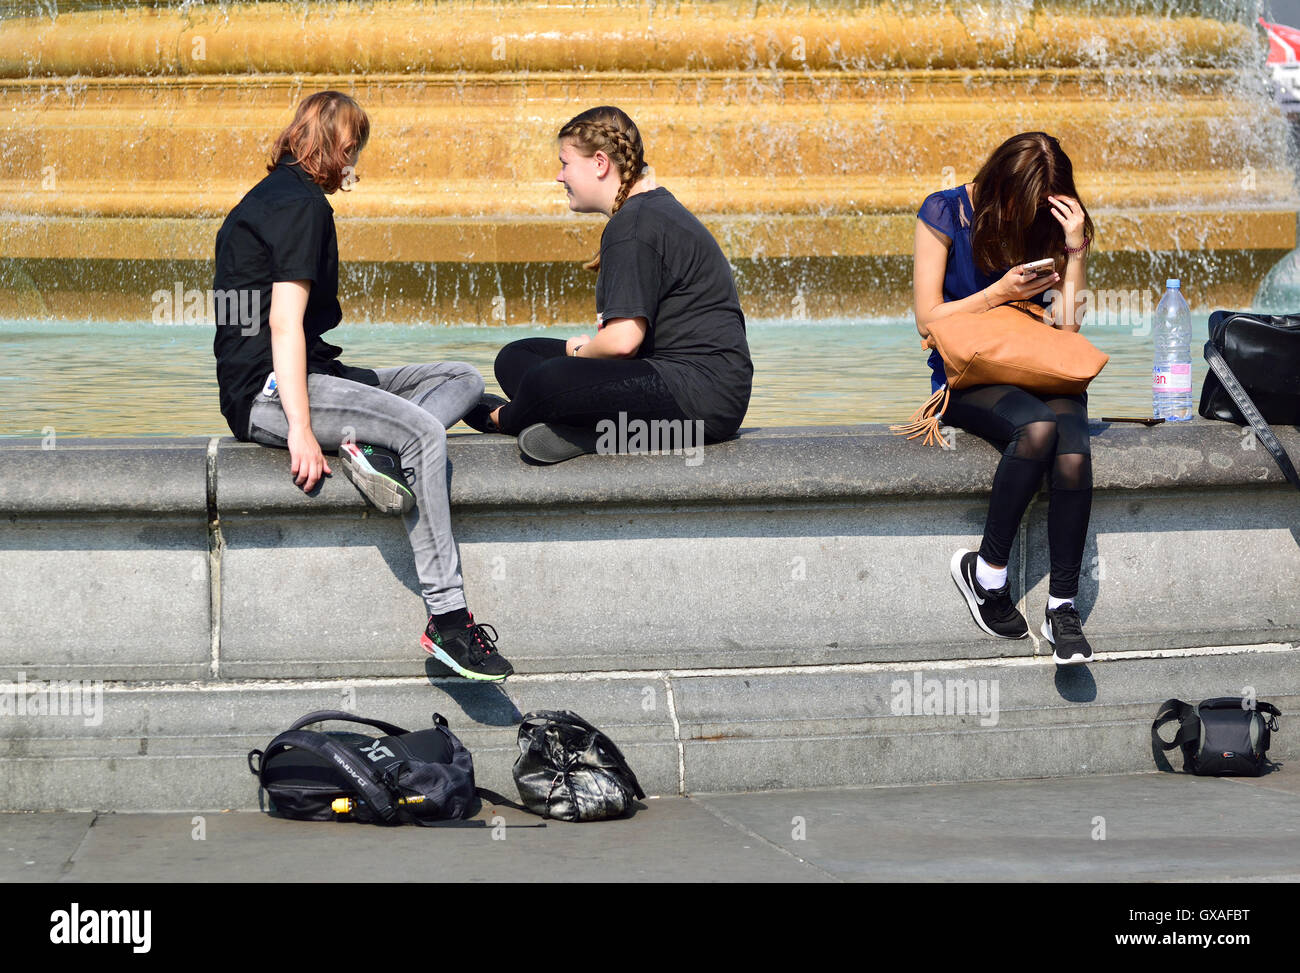 London, England, UK. Trafalgar Square - young people sitting on one of the fountains. Stock Photo